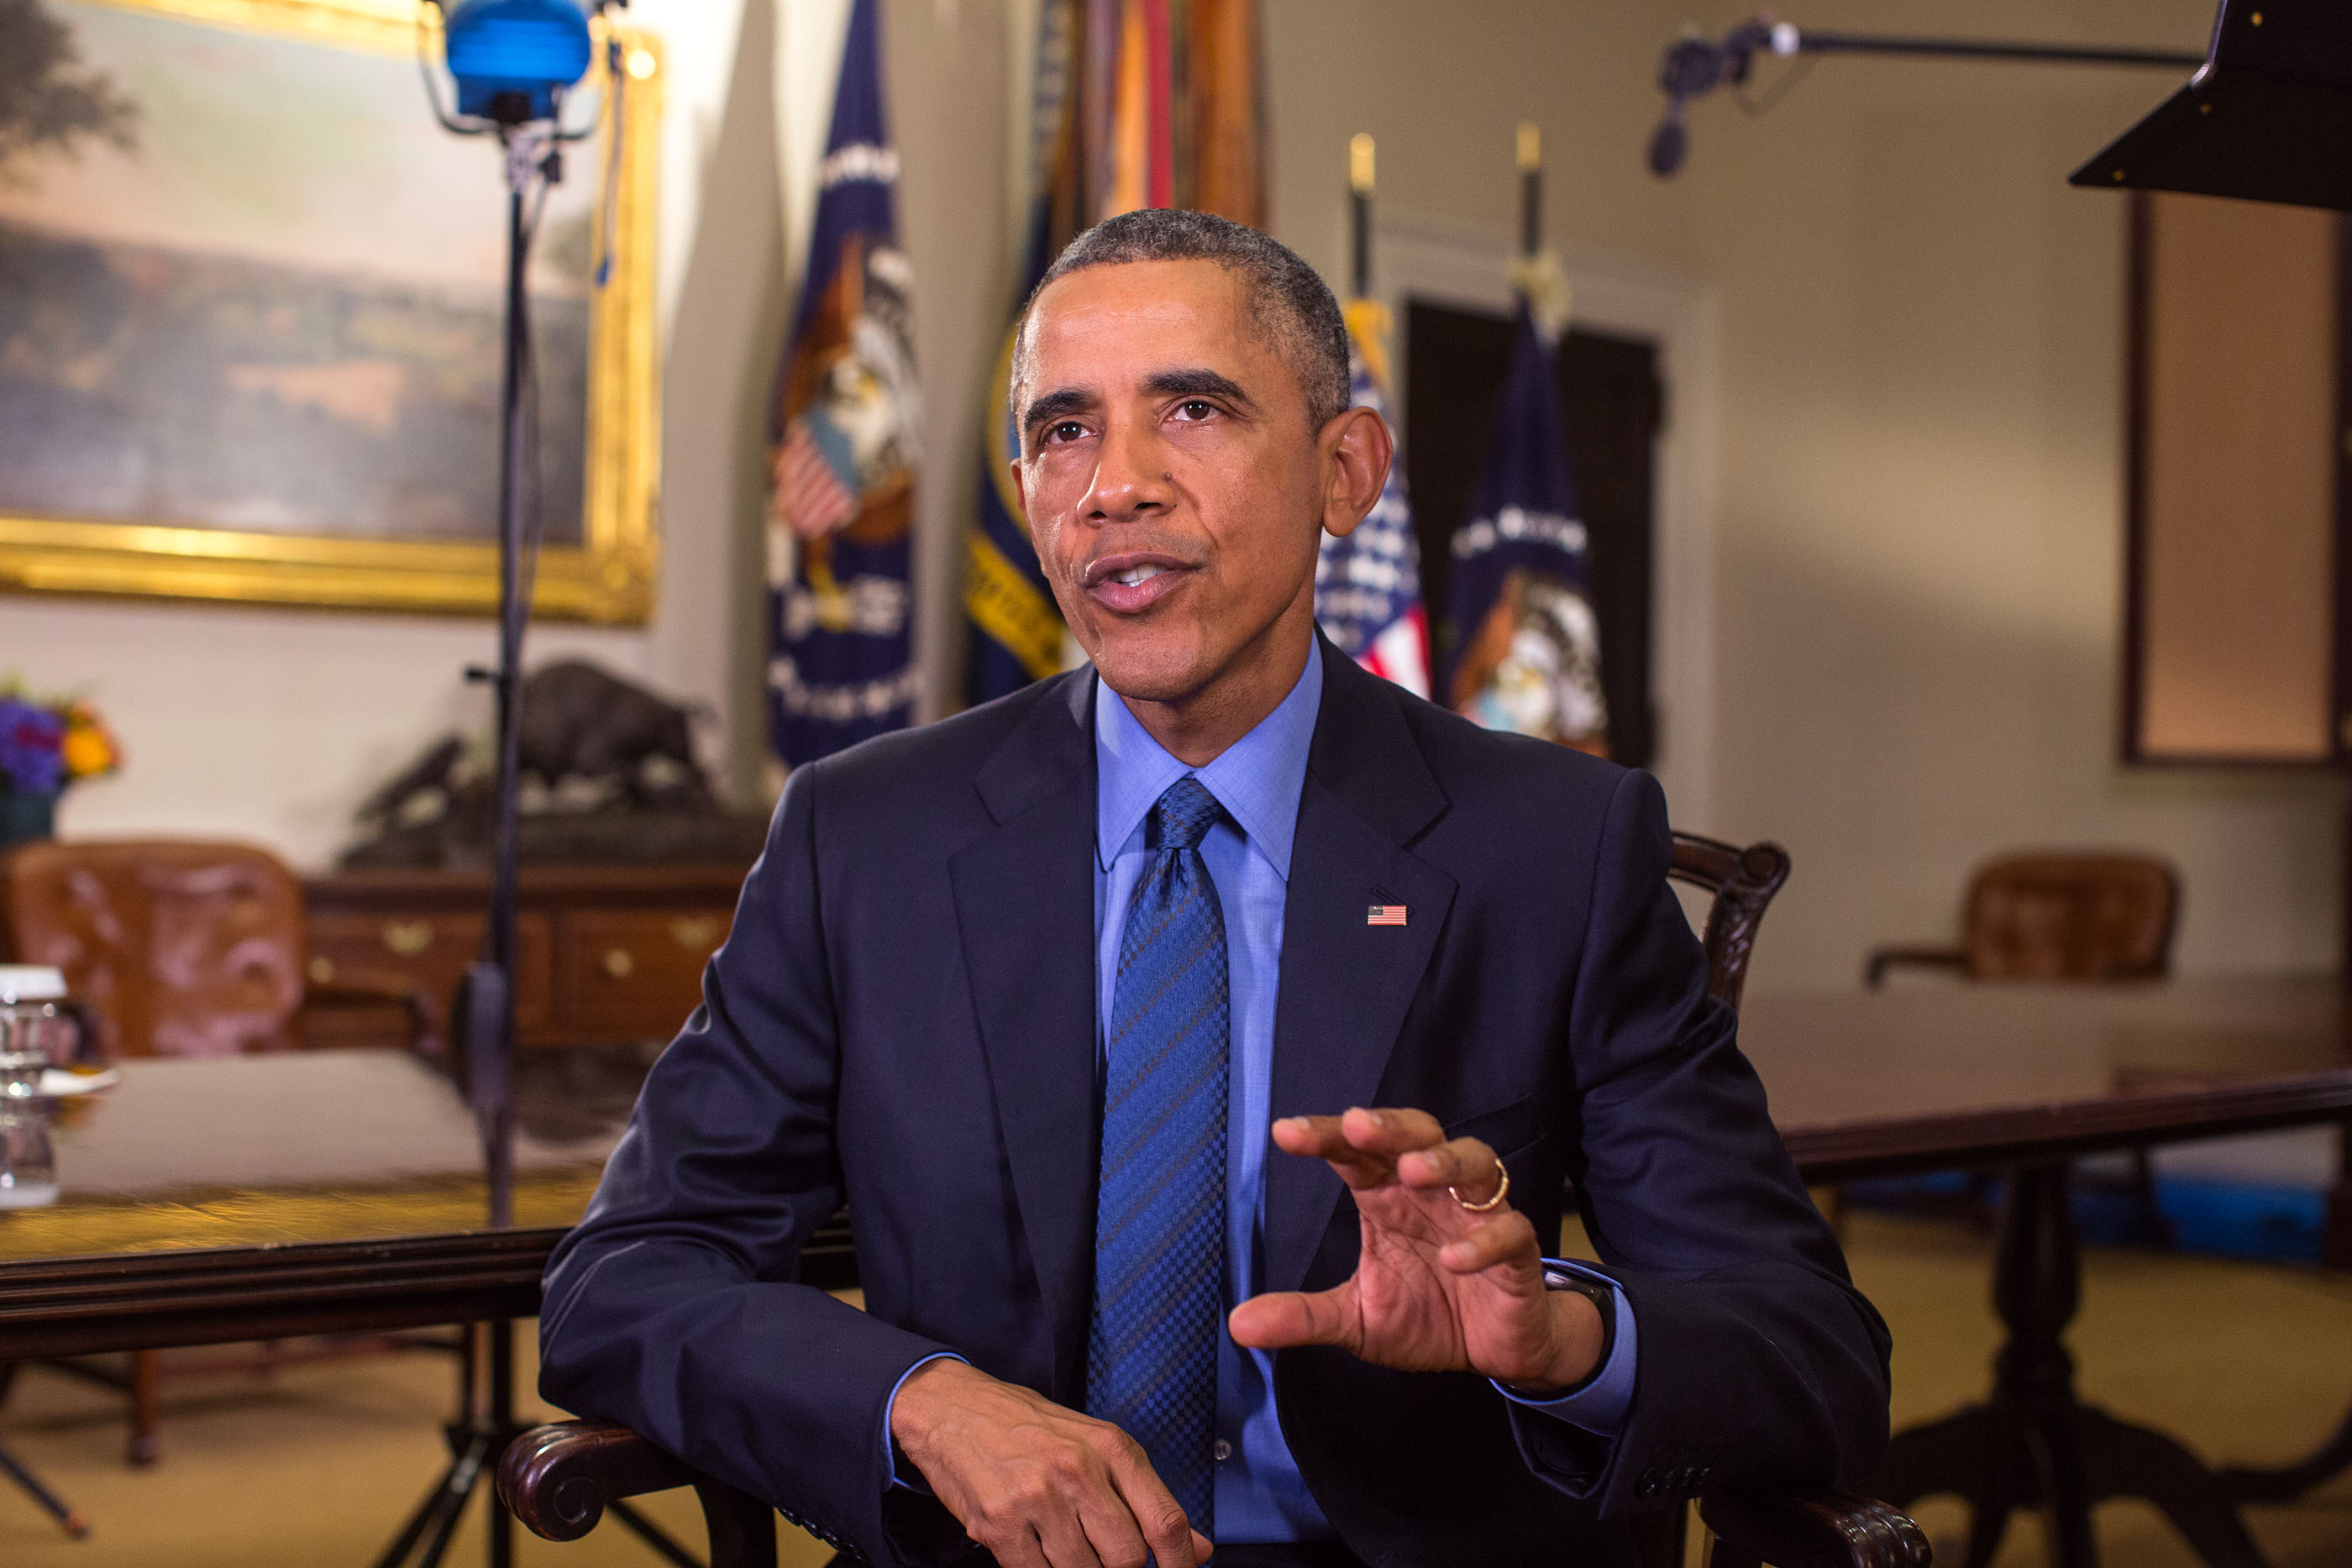 President Barack Obama tapes the Weekly Address in the Roosevelt Room of the White House, July 10, 2015